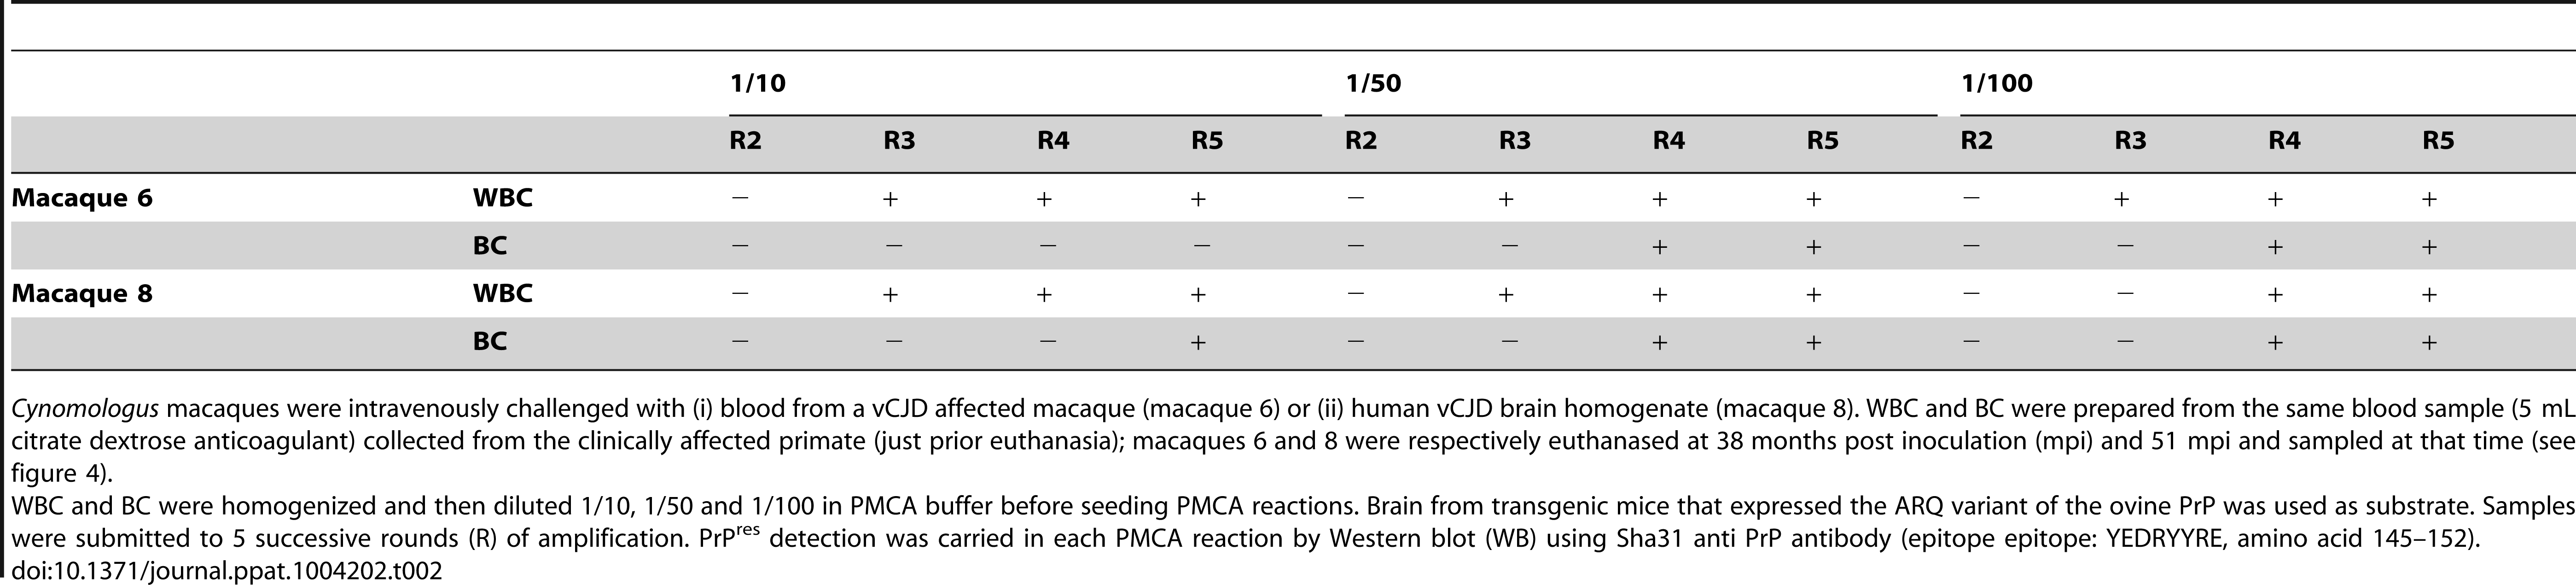 PrP<sup>res</sup> detection results in PMCA reactions seeded with white blood cells (WBC) or buffy coat (BC) from <i>Cynomologus</i> macaques clinically affected with vCJD.